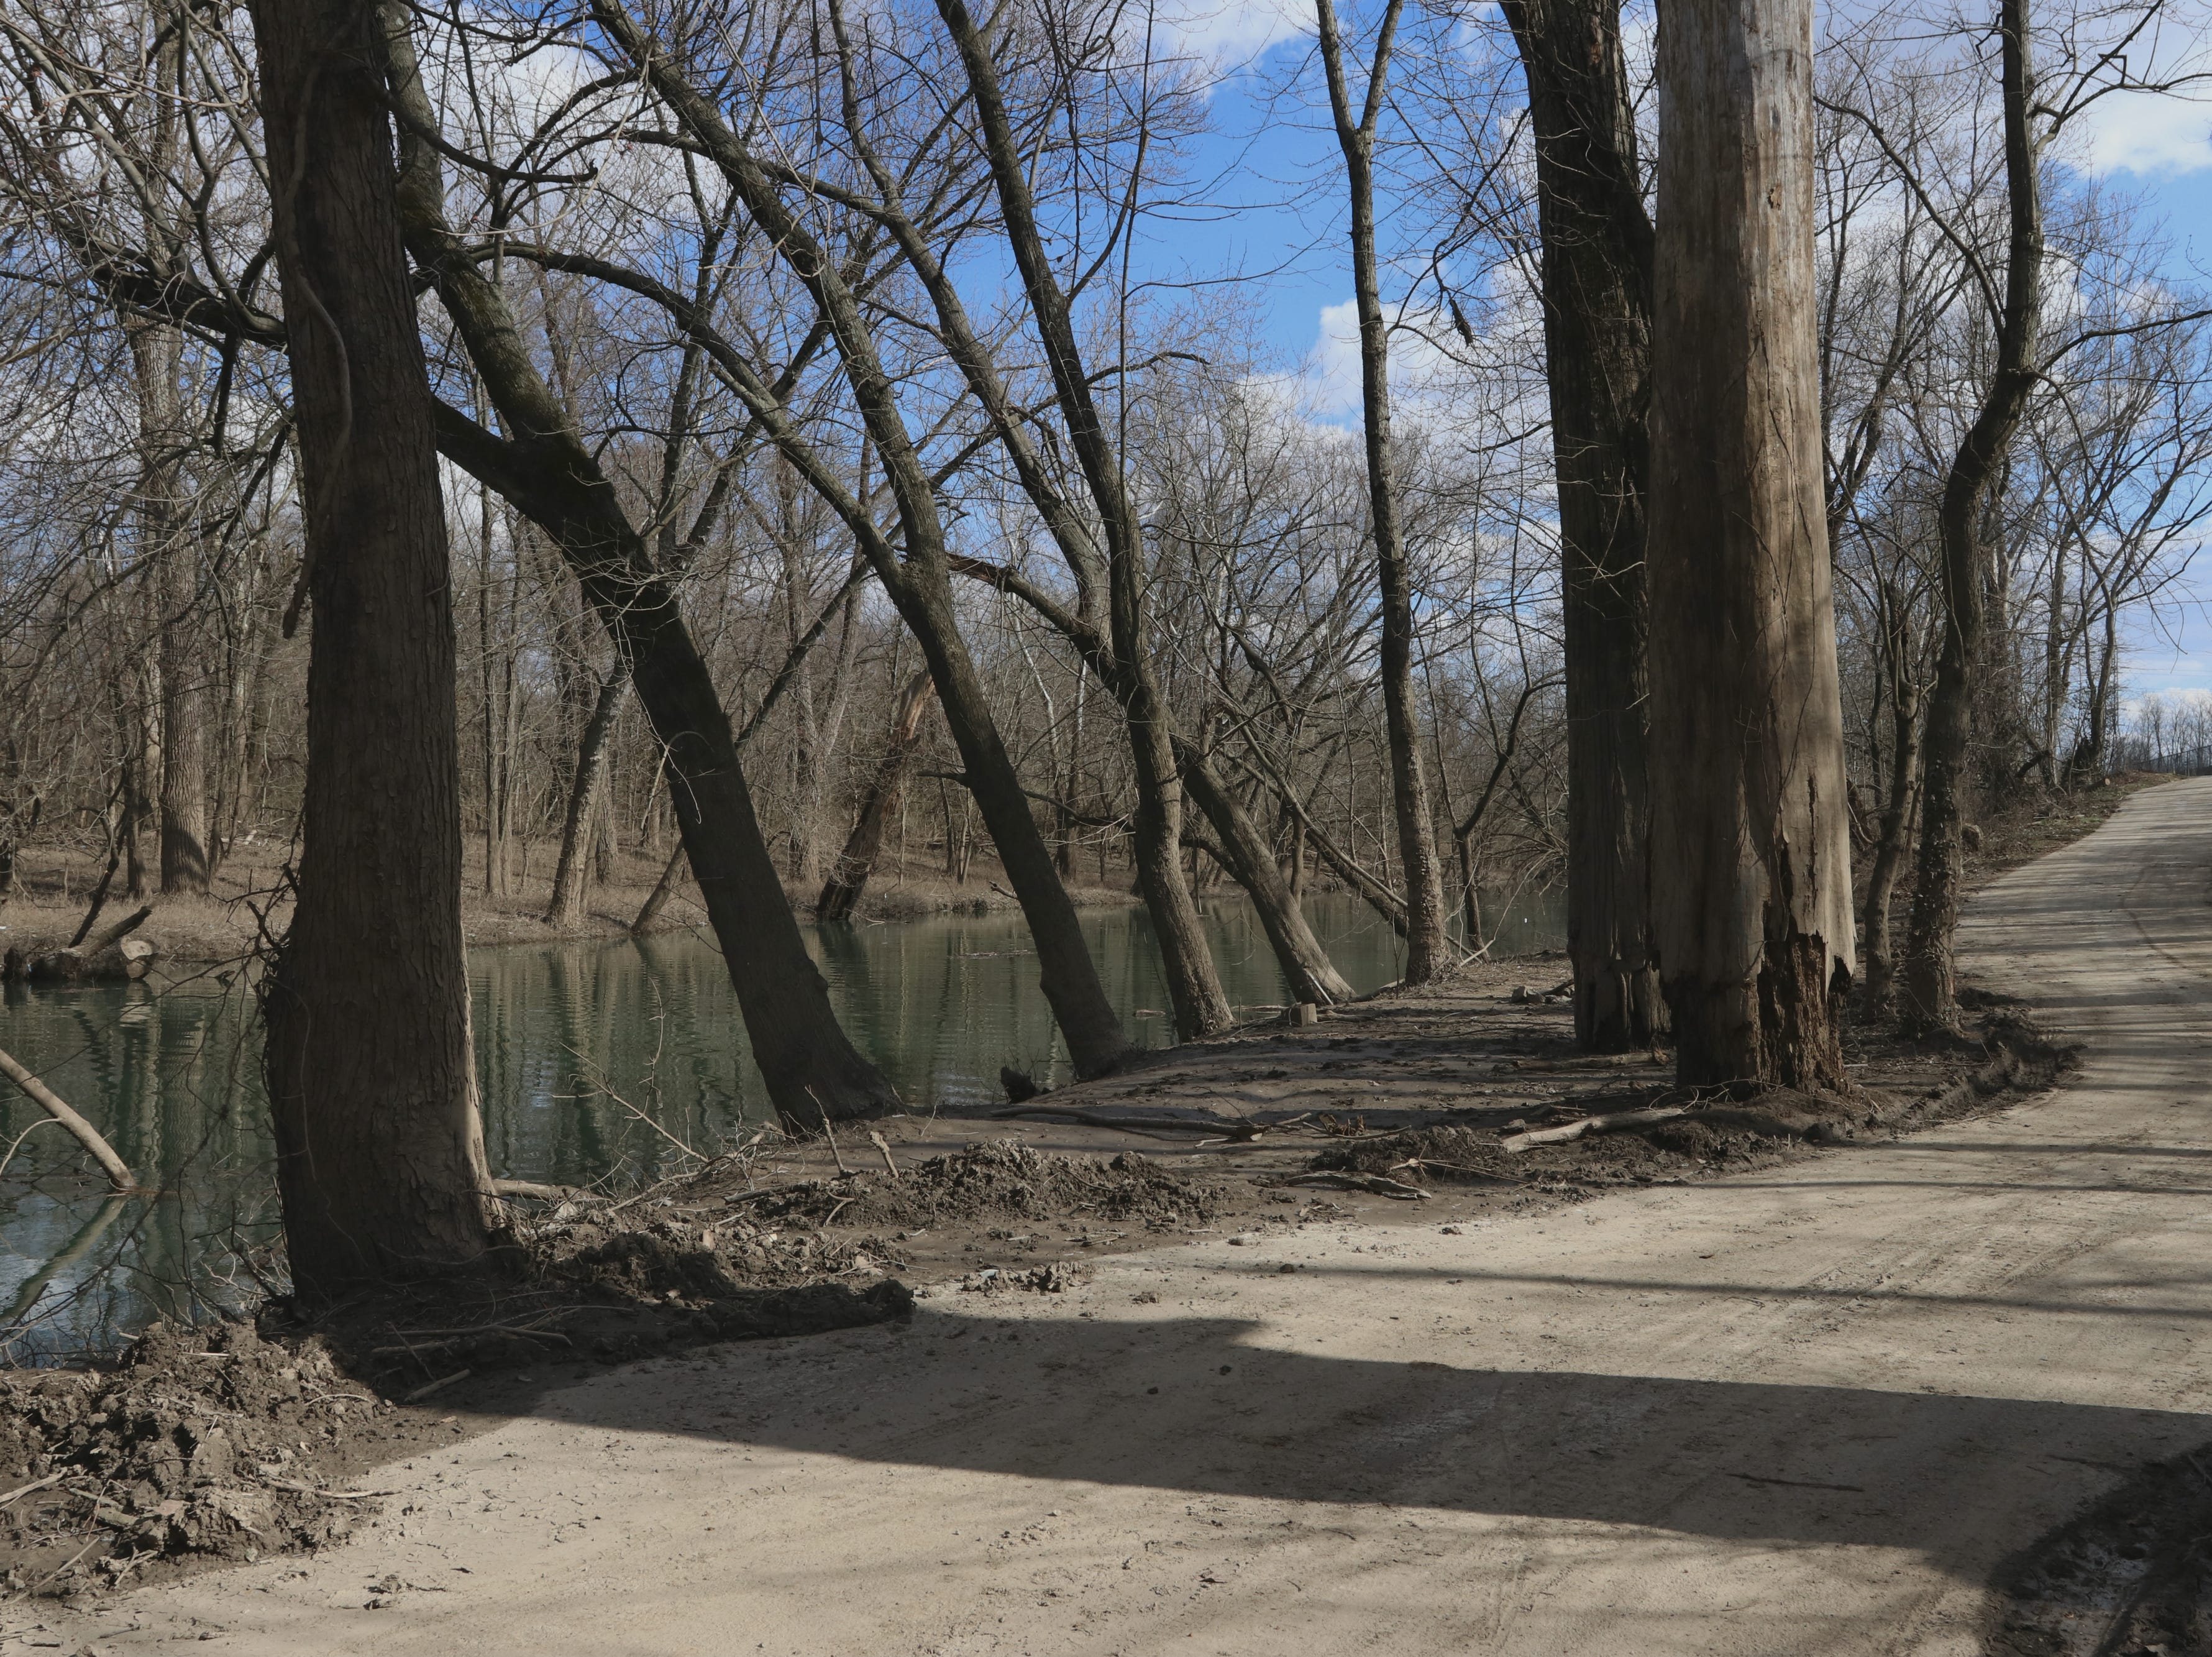 A path runs alongside Beargrass Creek at Eva Bandman Park near downtown Louisville.